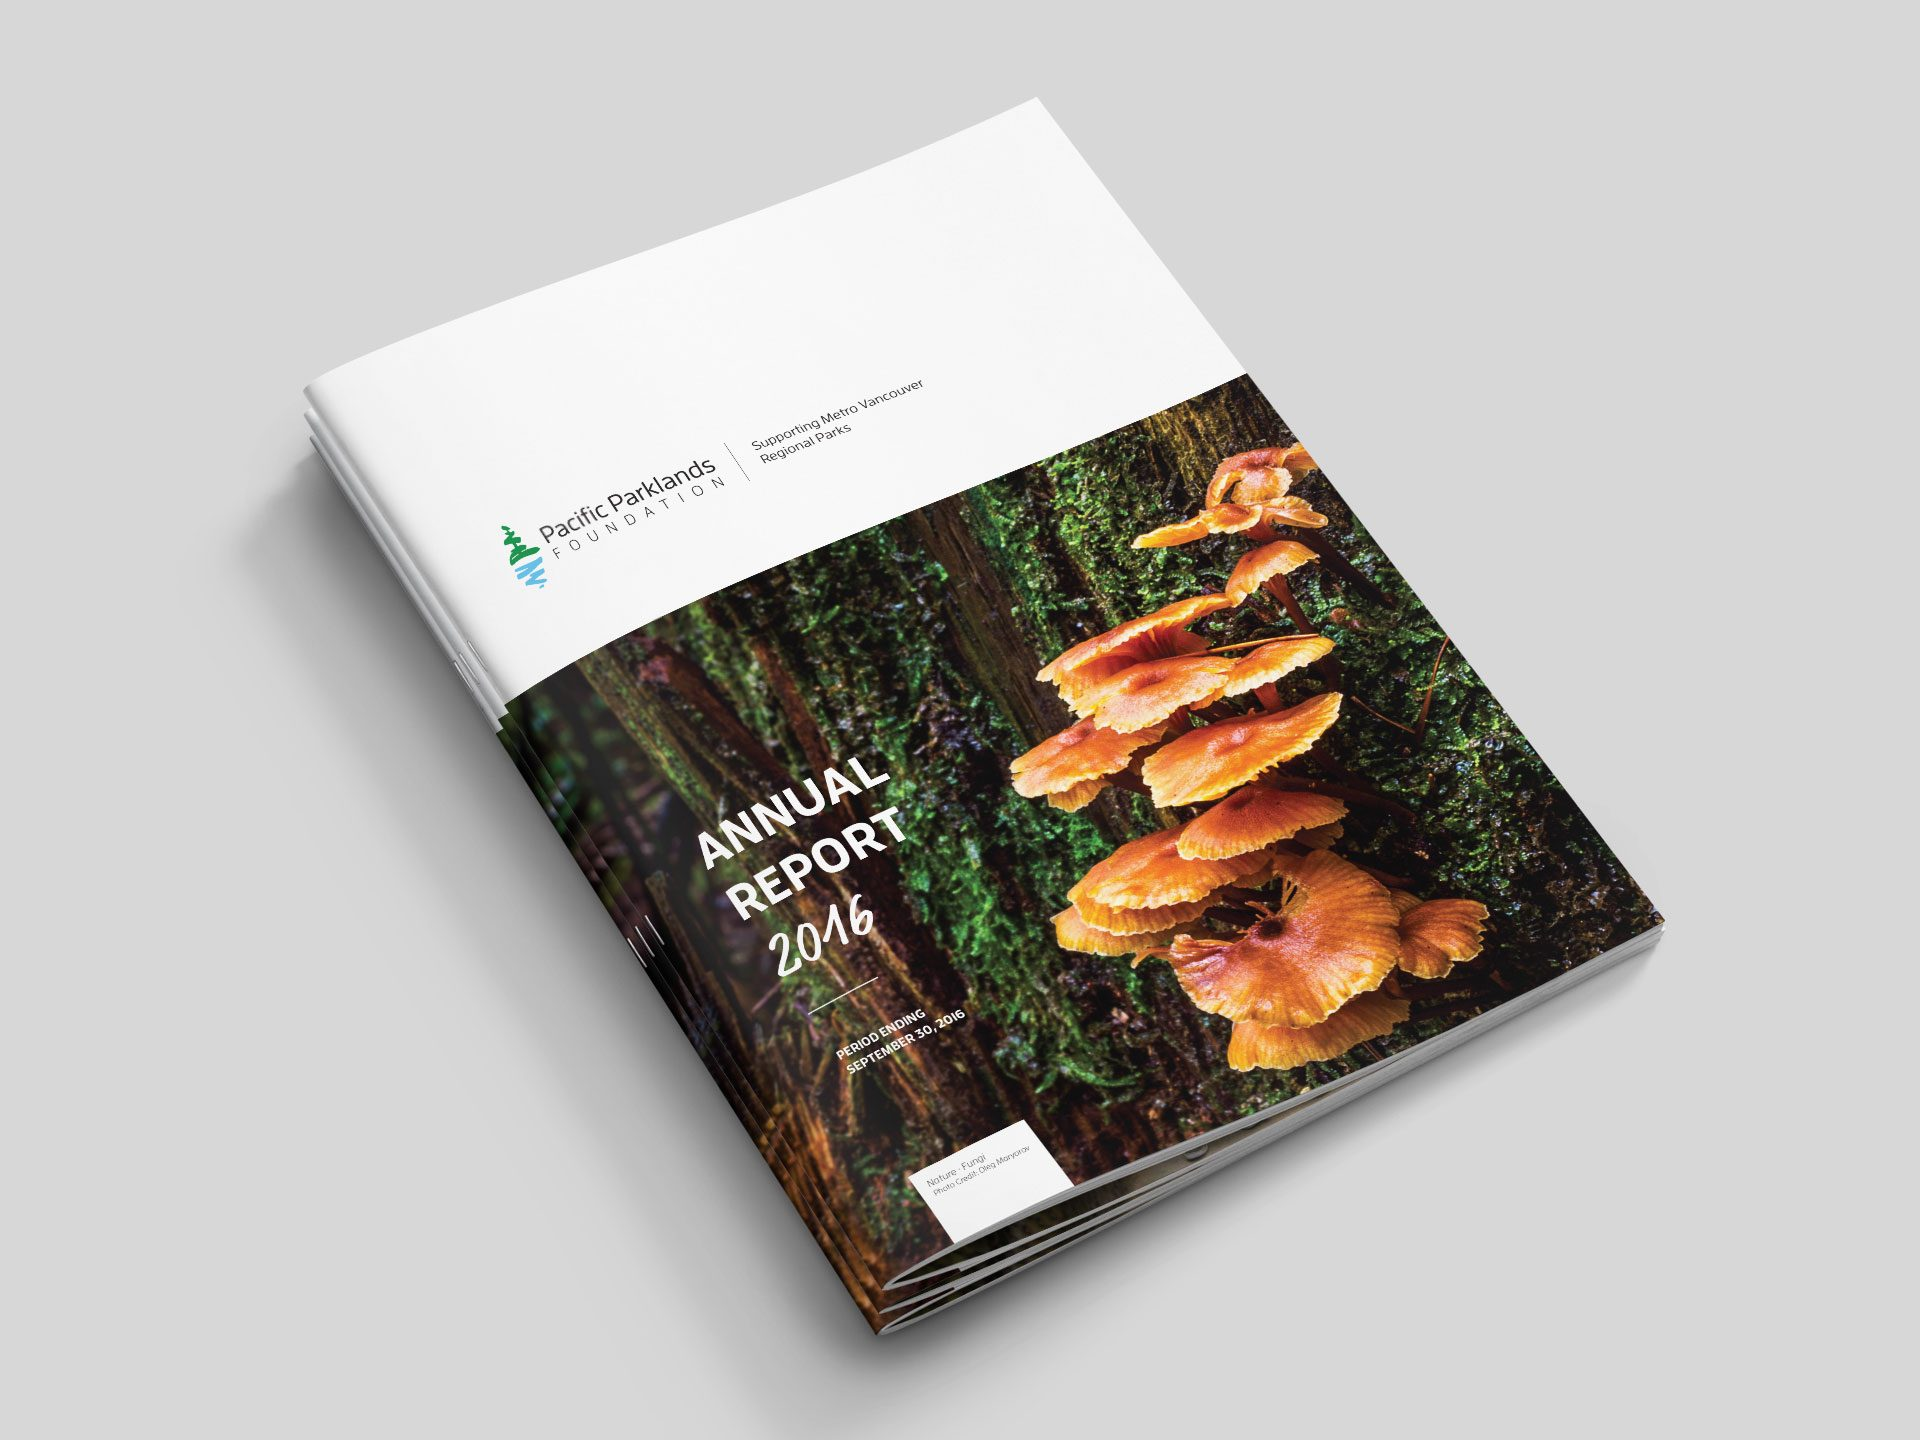 Y5 Creative Case Studies 2017 Annual Report 2016 Booklet Pacific Parklands Foundation 1